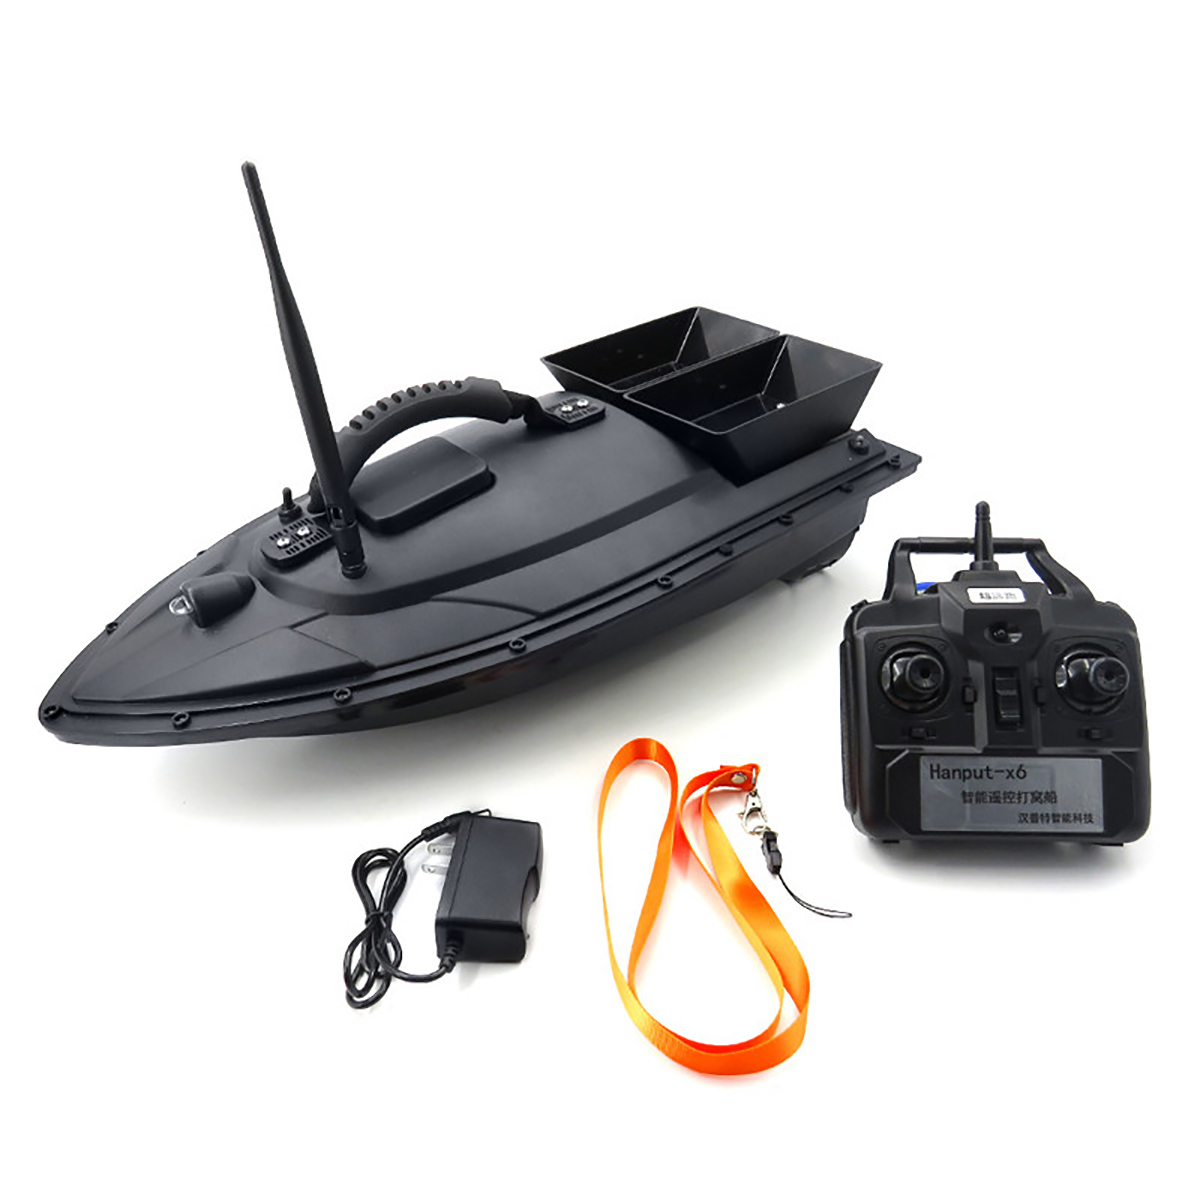 Flytec 2011-5 Generation Fishing RC Bait Boat Toy Dual Motor Fish Finder Remote Control Fishing Boat Speedboat RTR Kit Christmas image